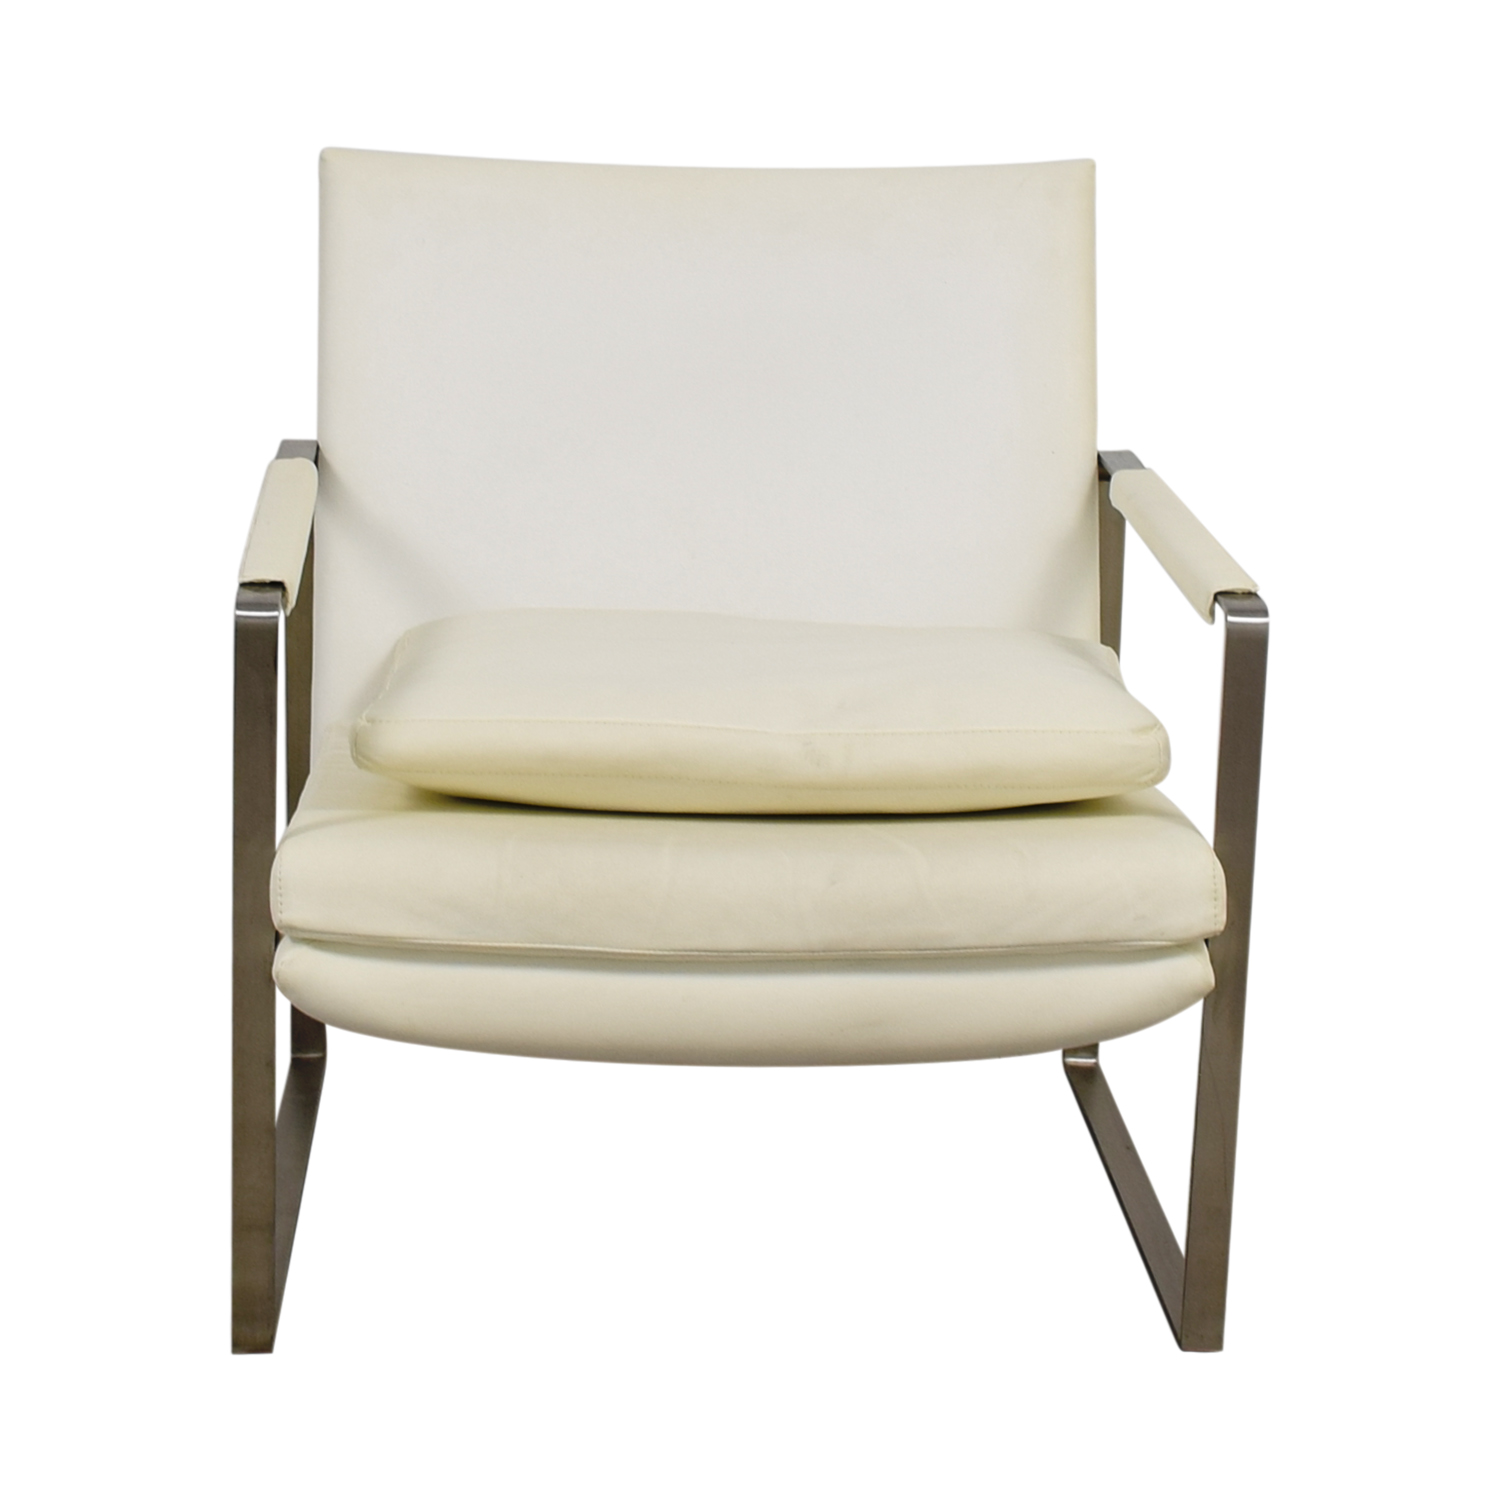 Zara Soho Concept Zara Soho Concept White and Chrome Accent Chair with Pillow price